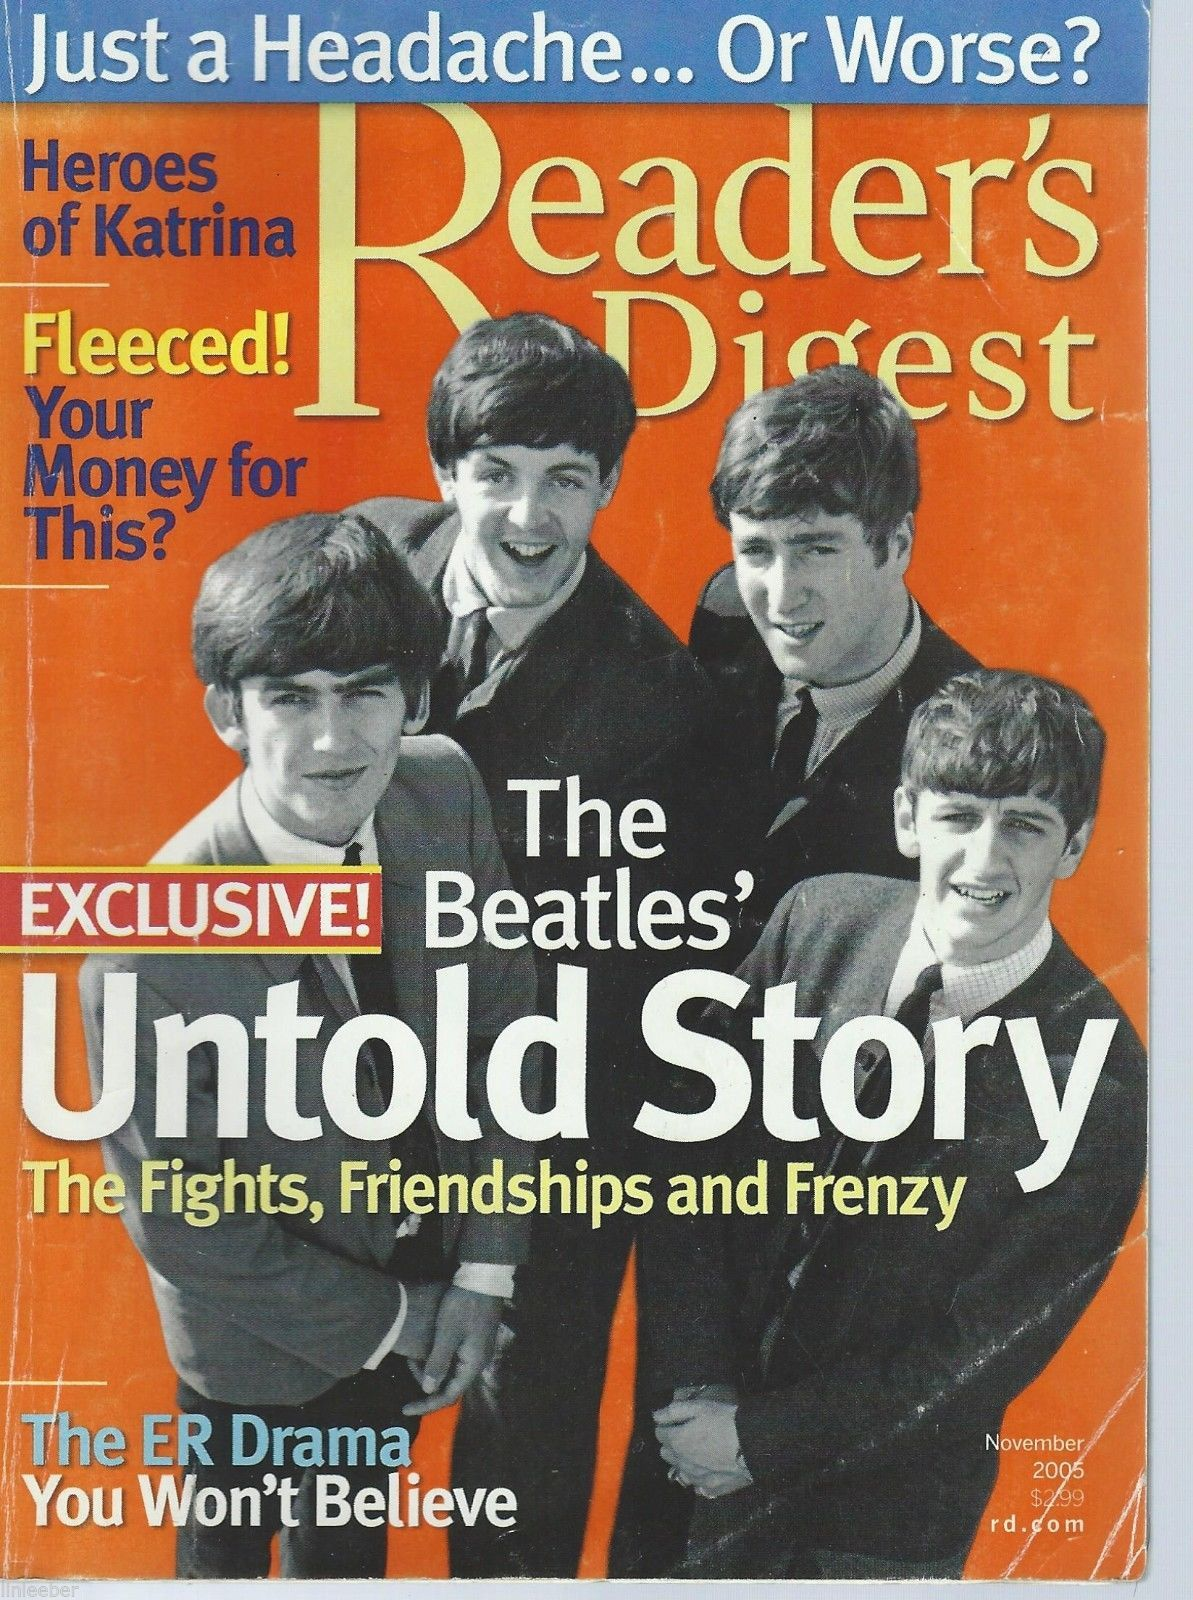 The Beatles' Untold Story-Fights,Friendships,and Frenzy;Reader's Digest,Nov.2005